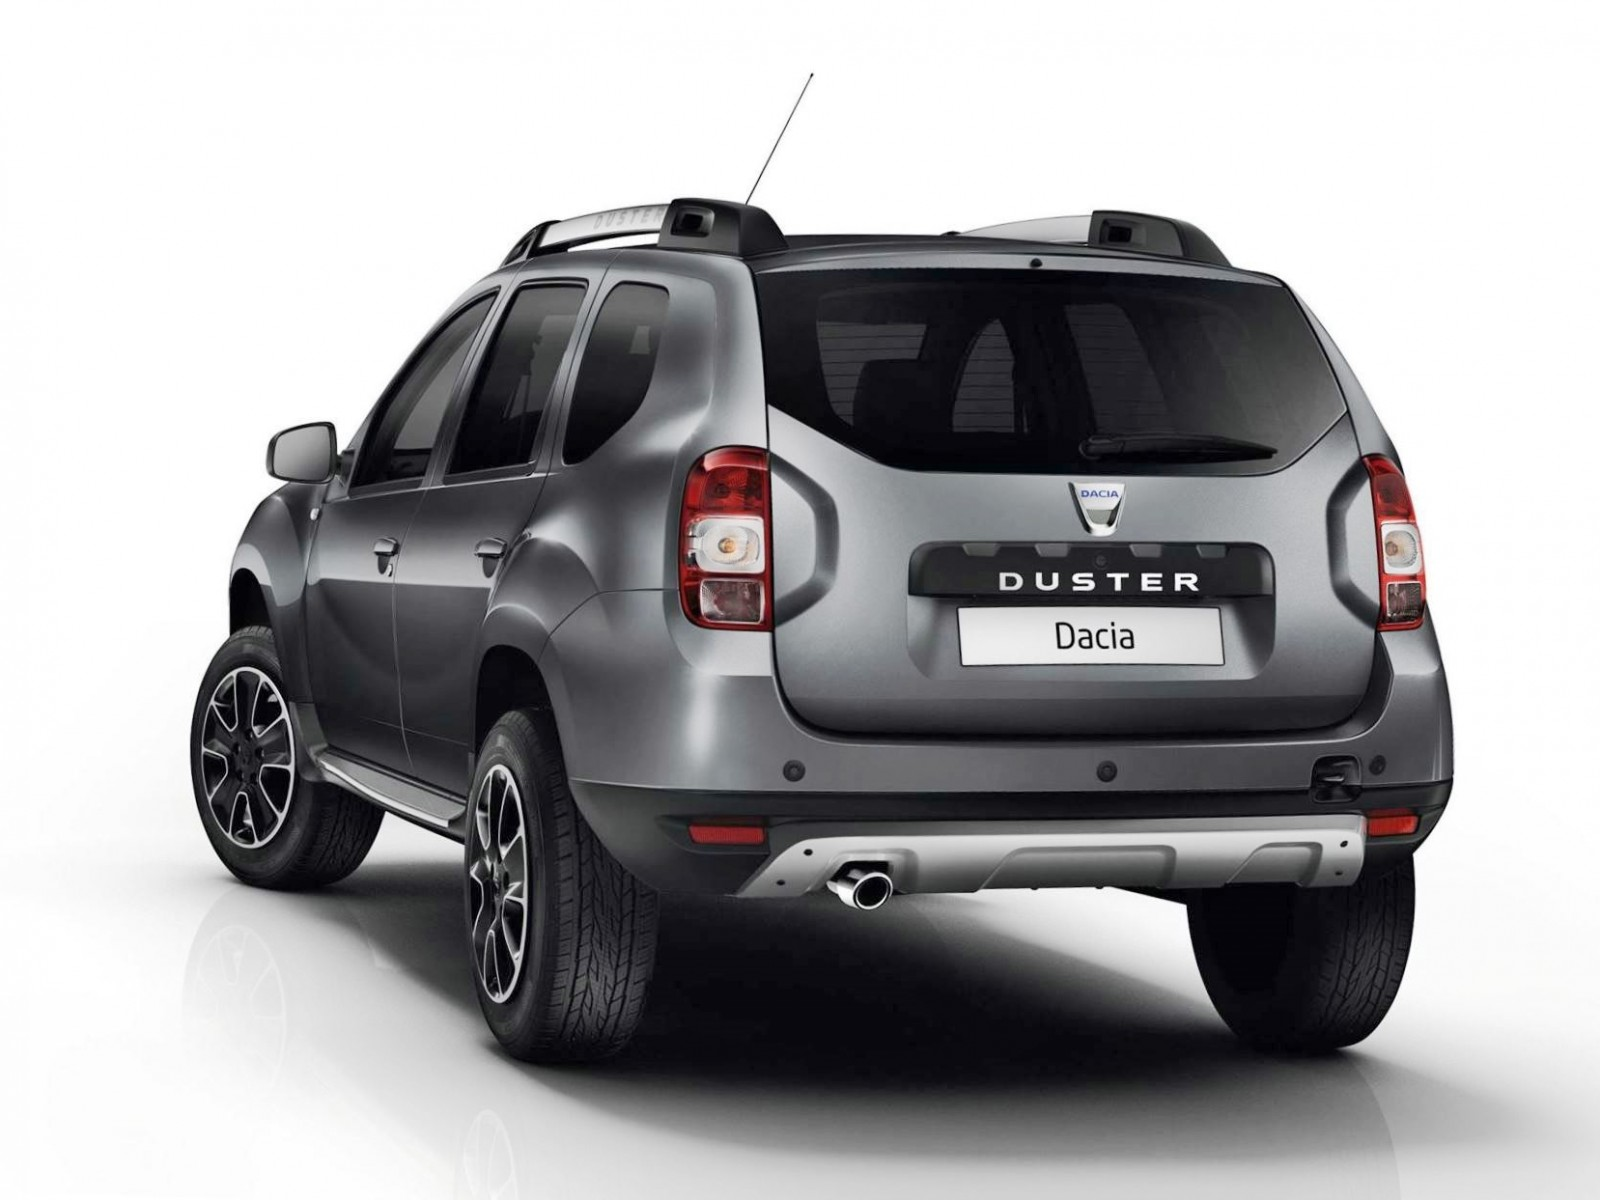 2016 dacia duster urban explorer 8. Black Bedroom Furniture Sets. Home Design Ideas